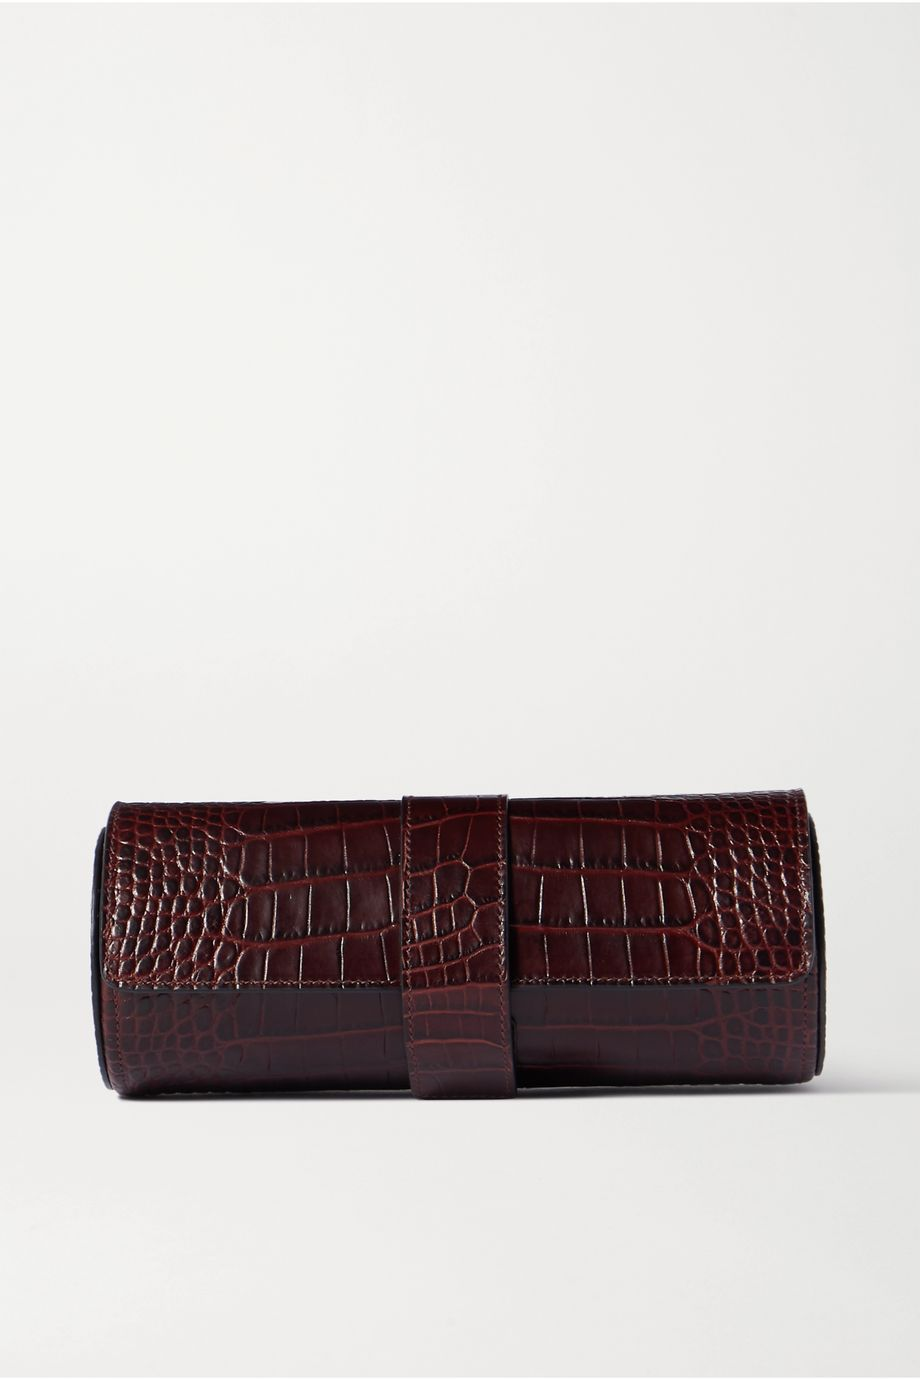 Smythson Mara glossed croc-effect leather watch roll